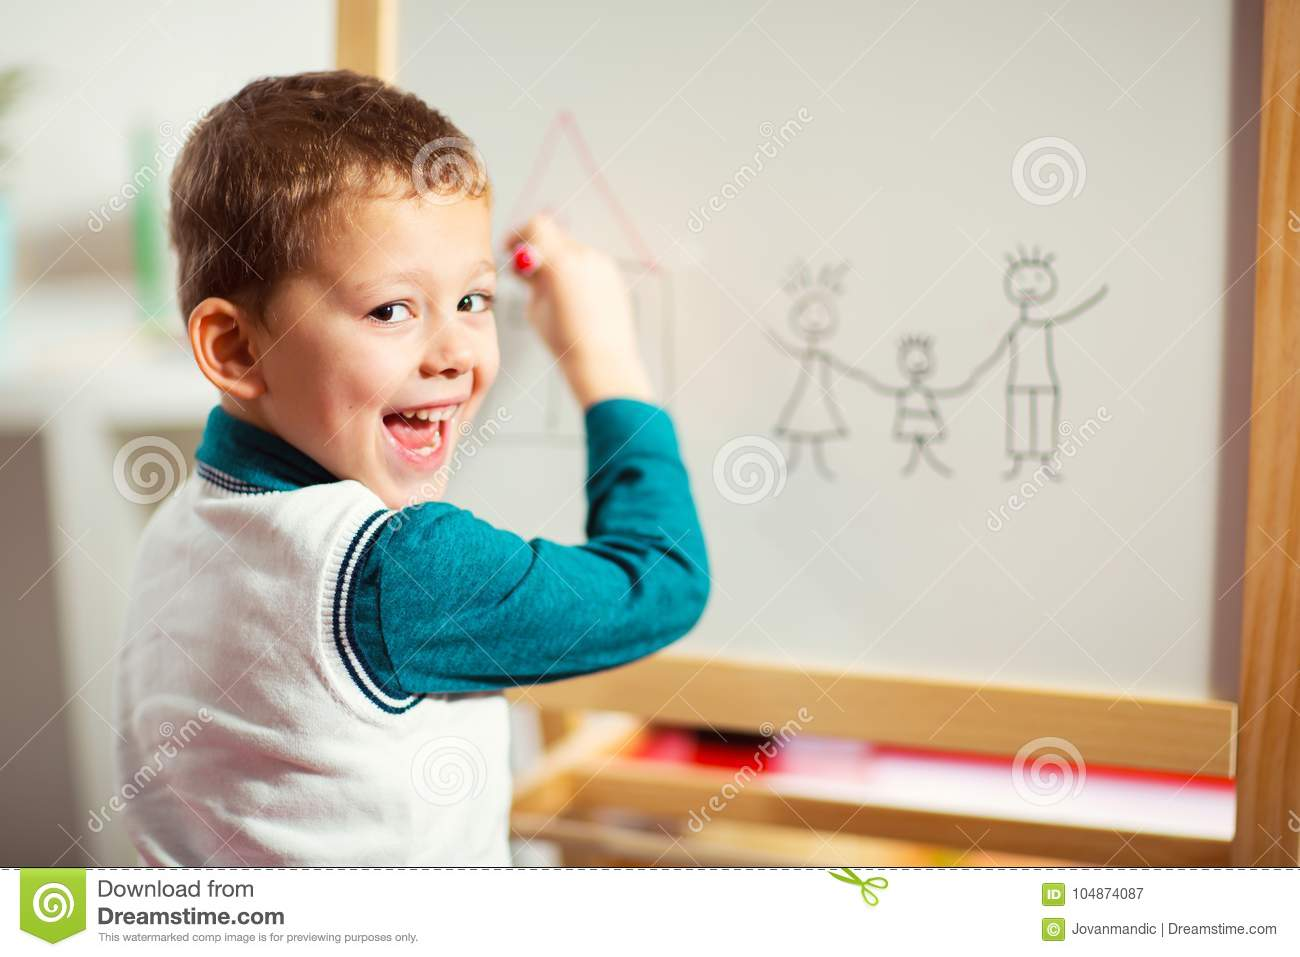 Cute little boy drawing on white board with felt pen and smiling